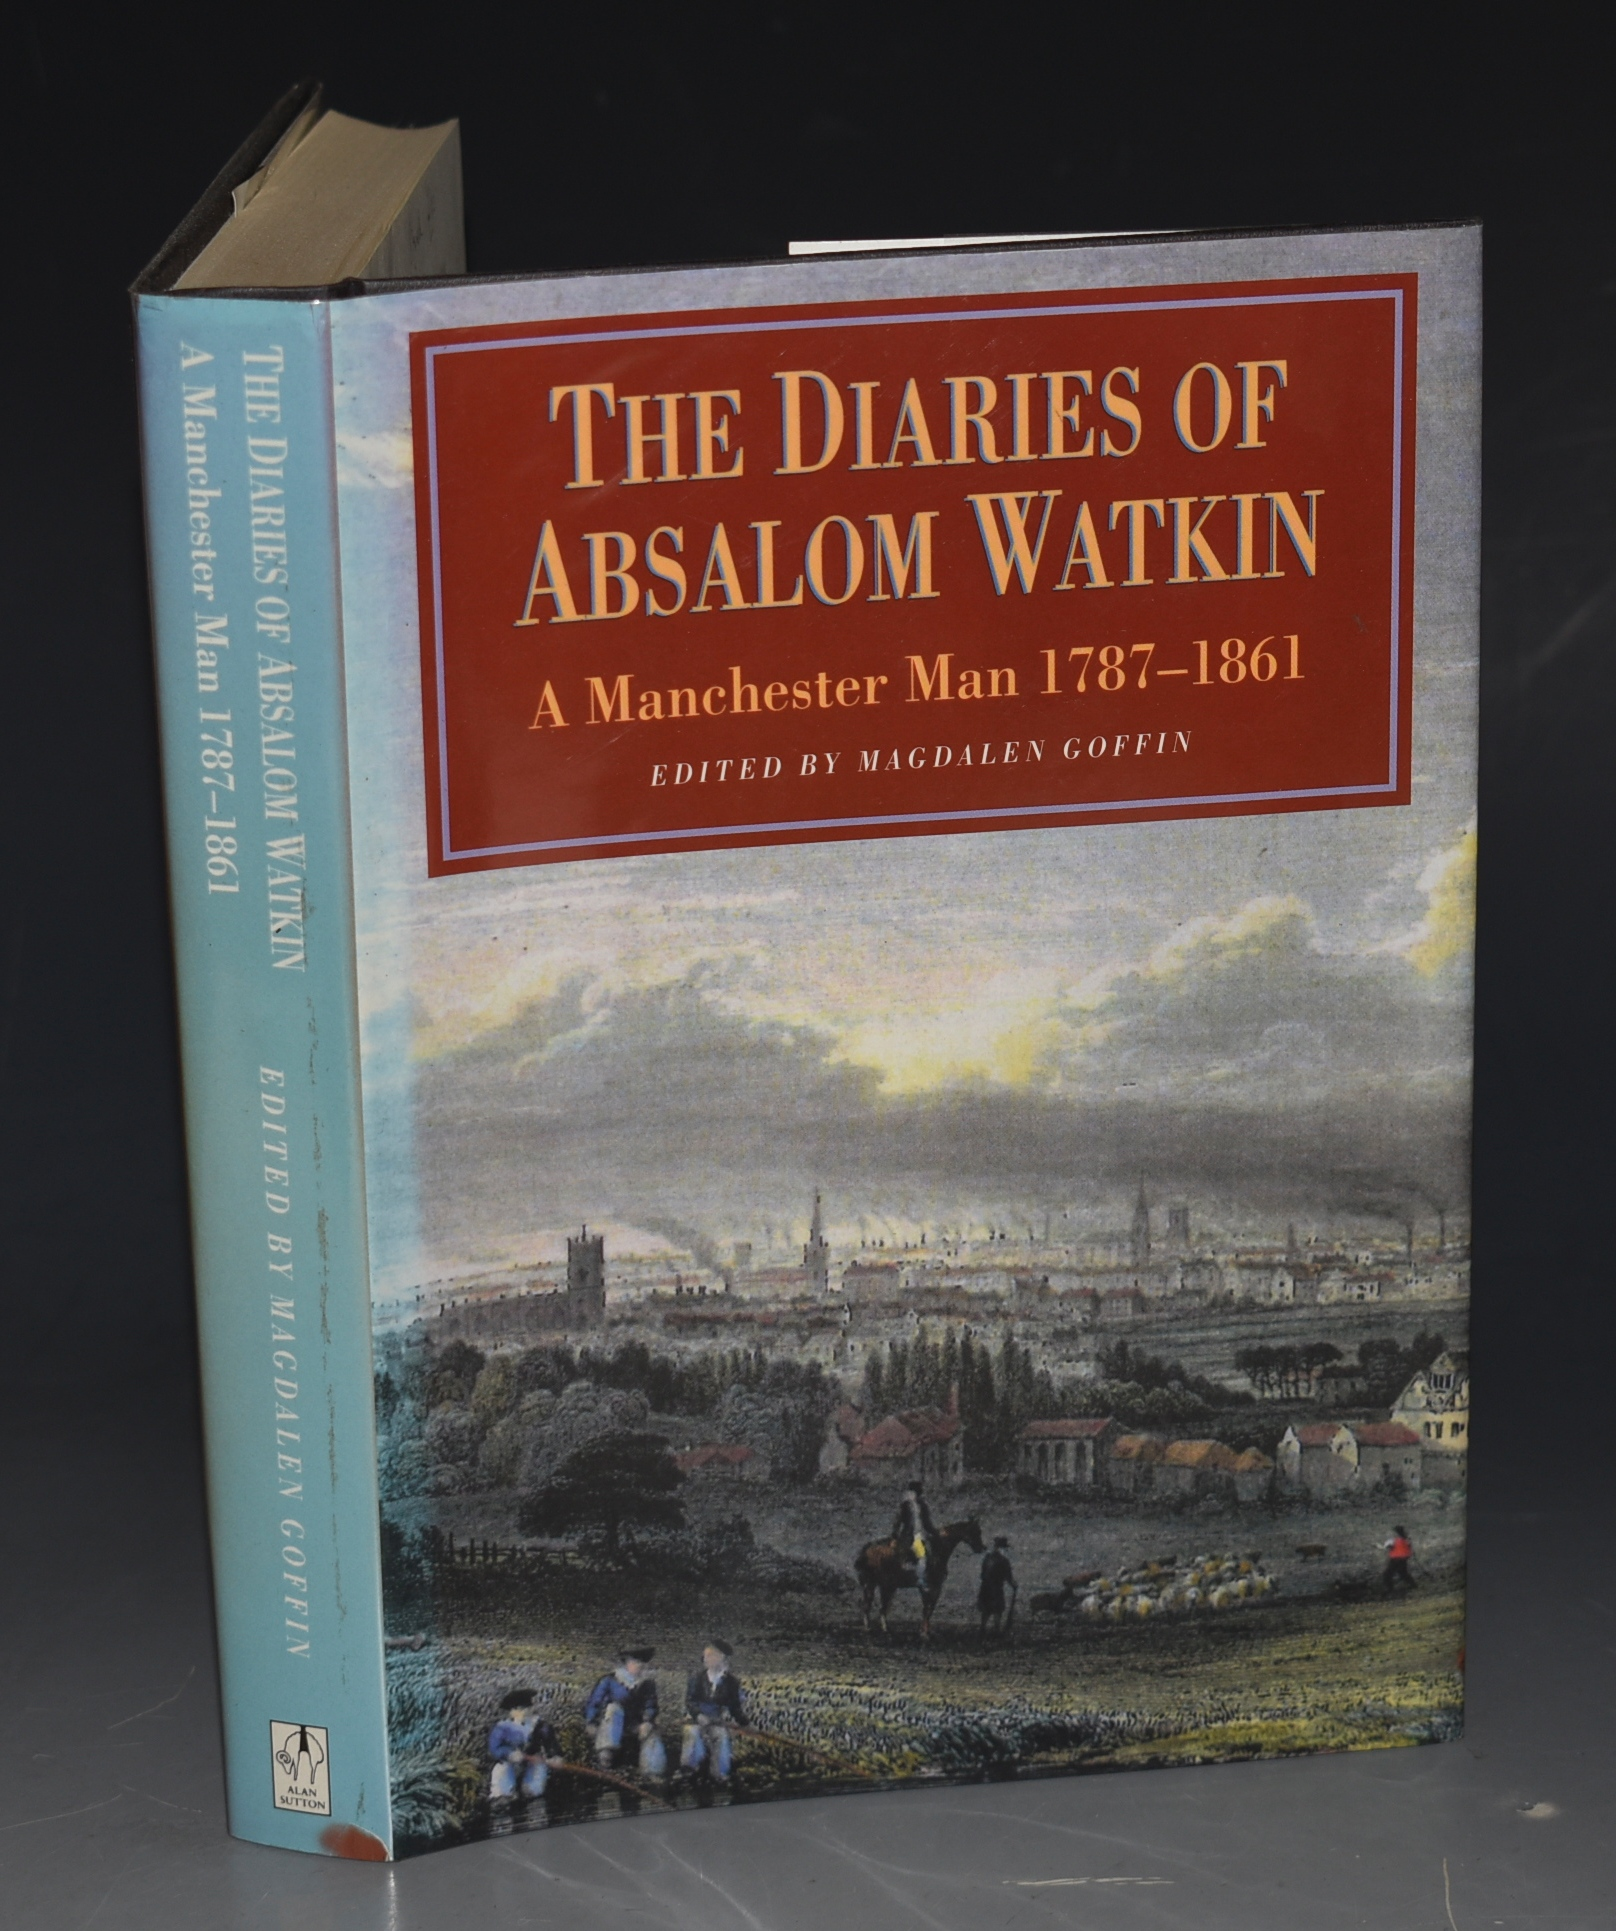 Image for The Diaries of Absalom Watkin. A Manchester Man 1787-1861. SIGNED COPY.